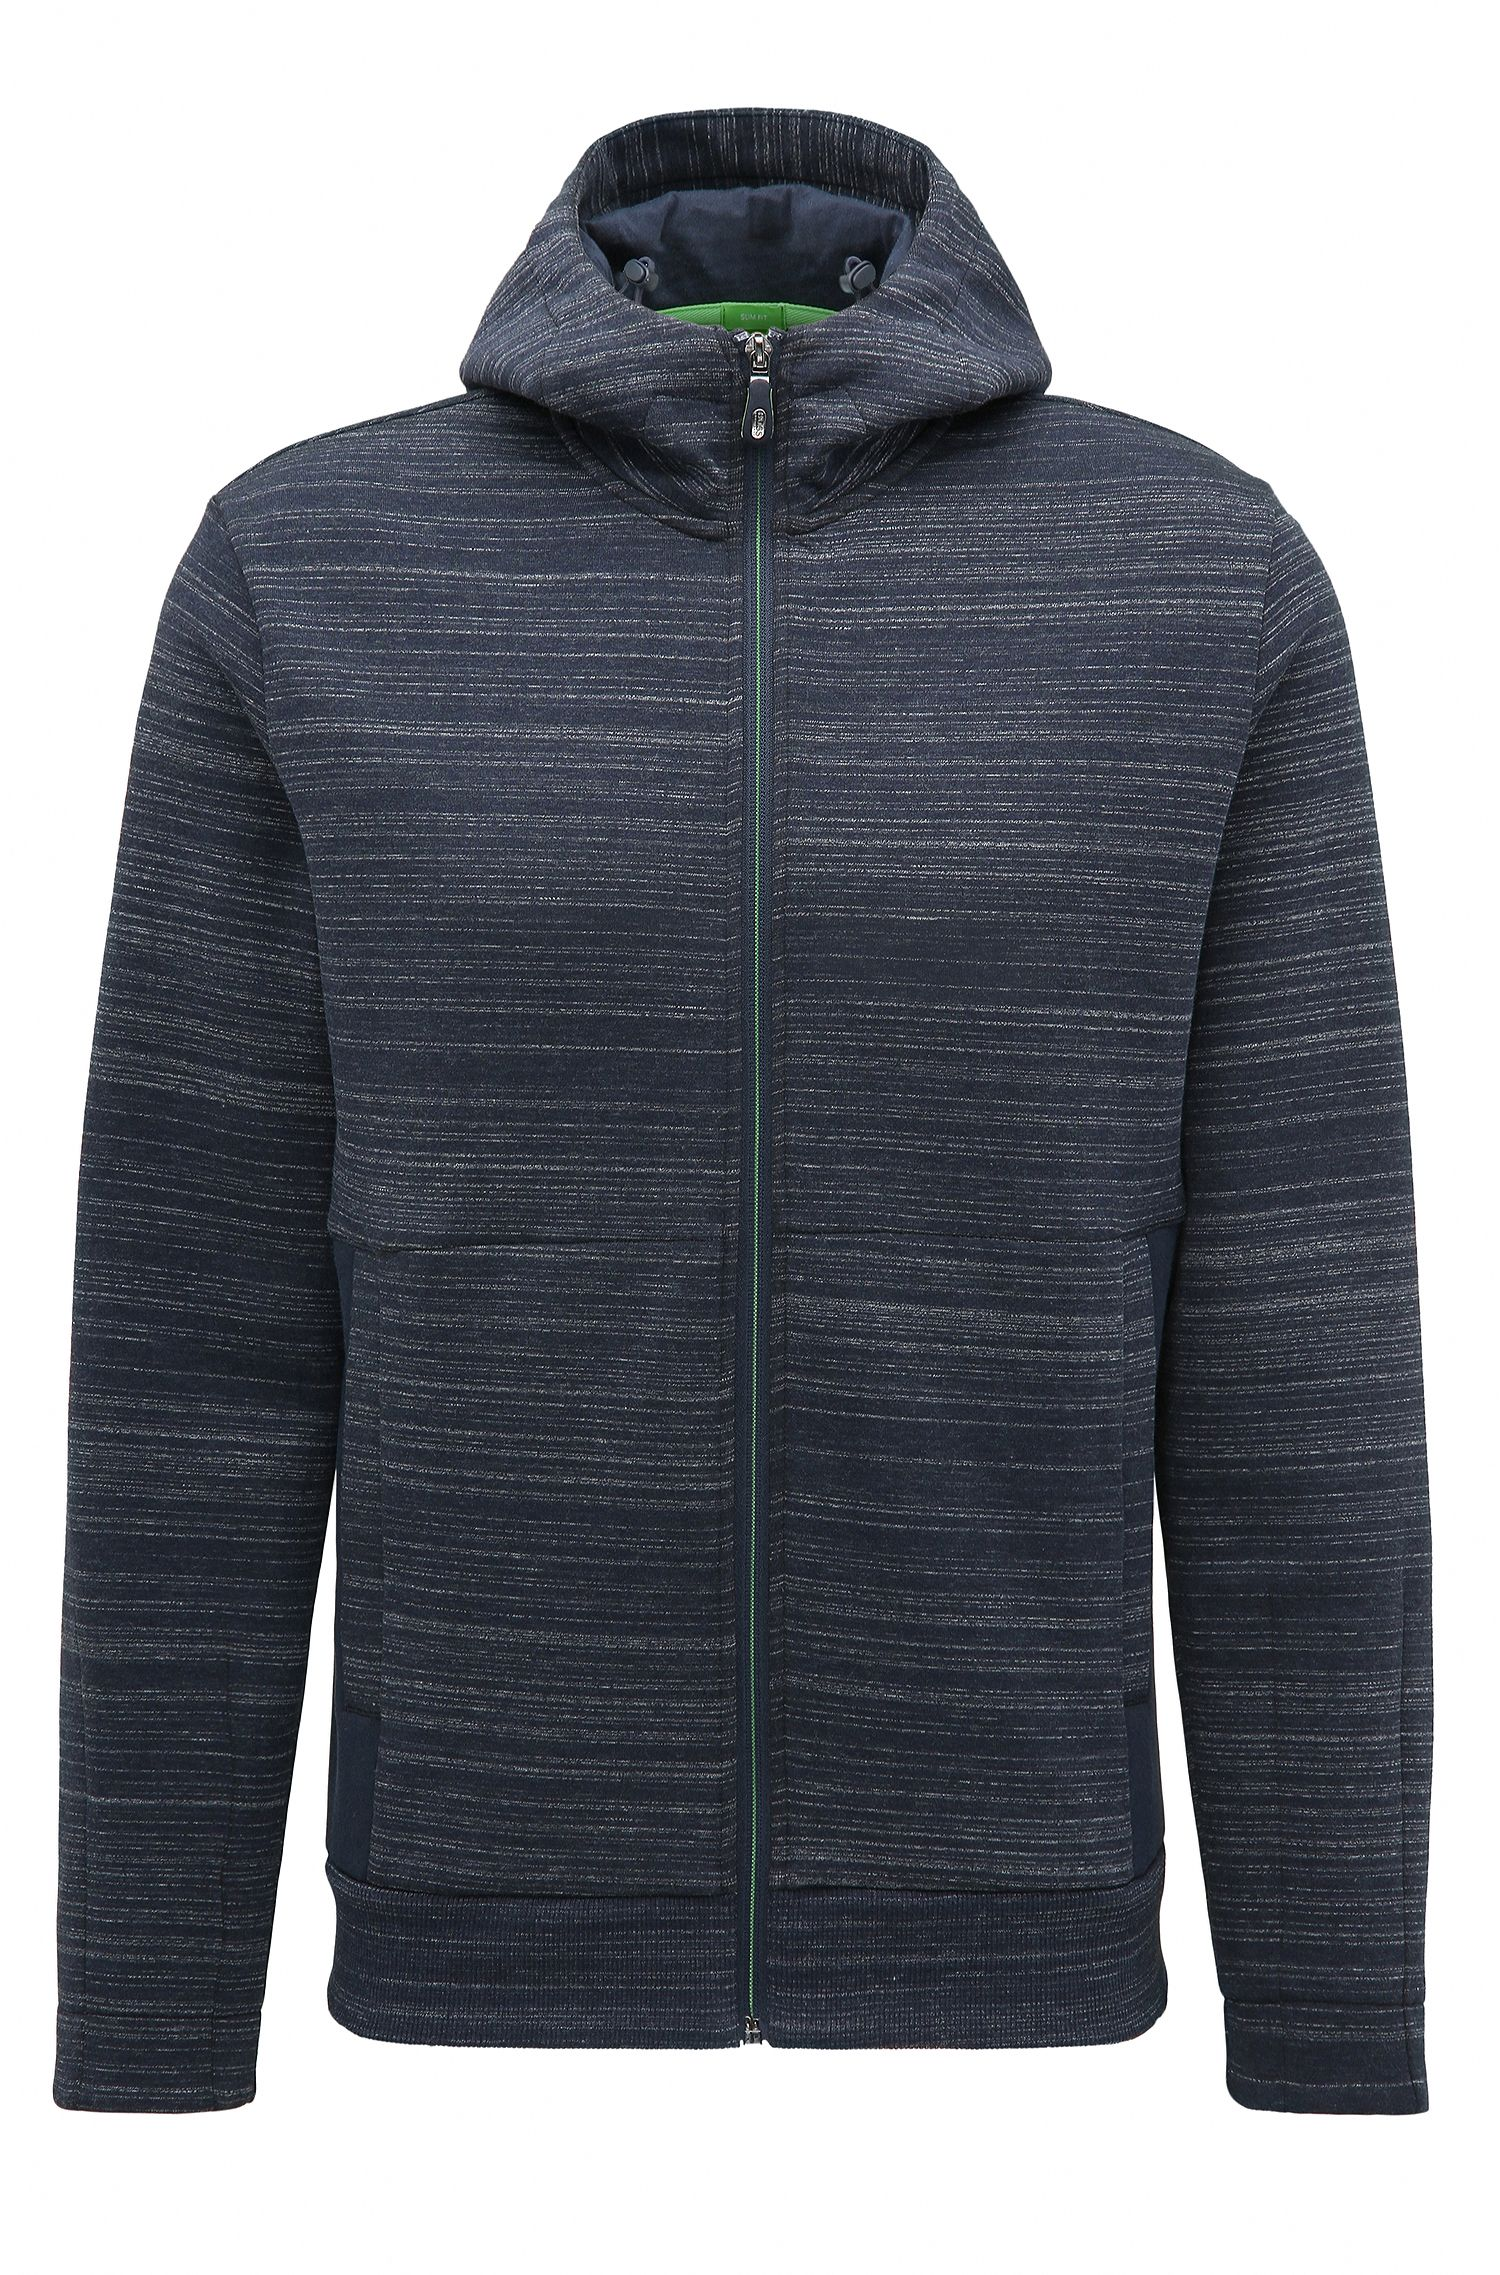 'Sverre' | Slim Fit, Cotton Blend Full-Zip Hooded Sweater